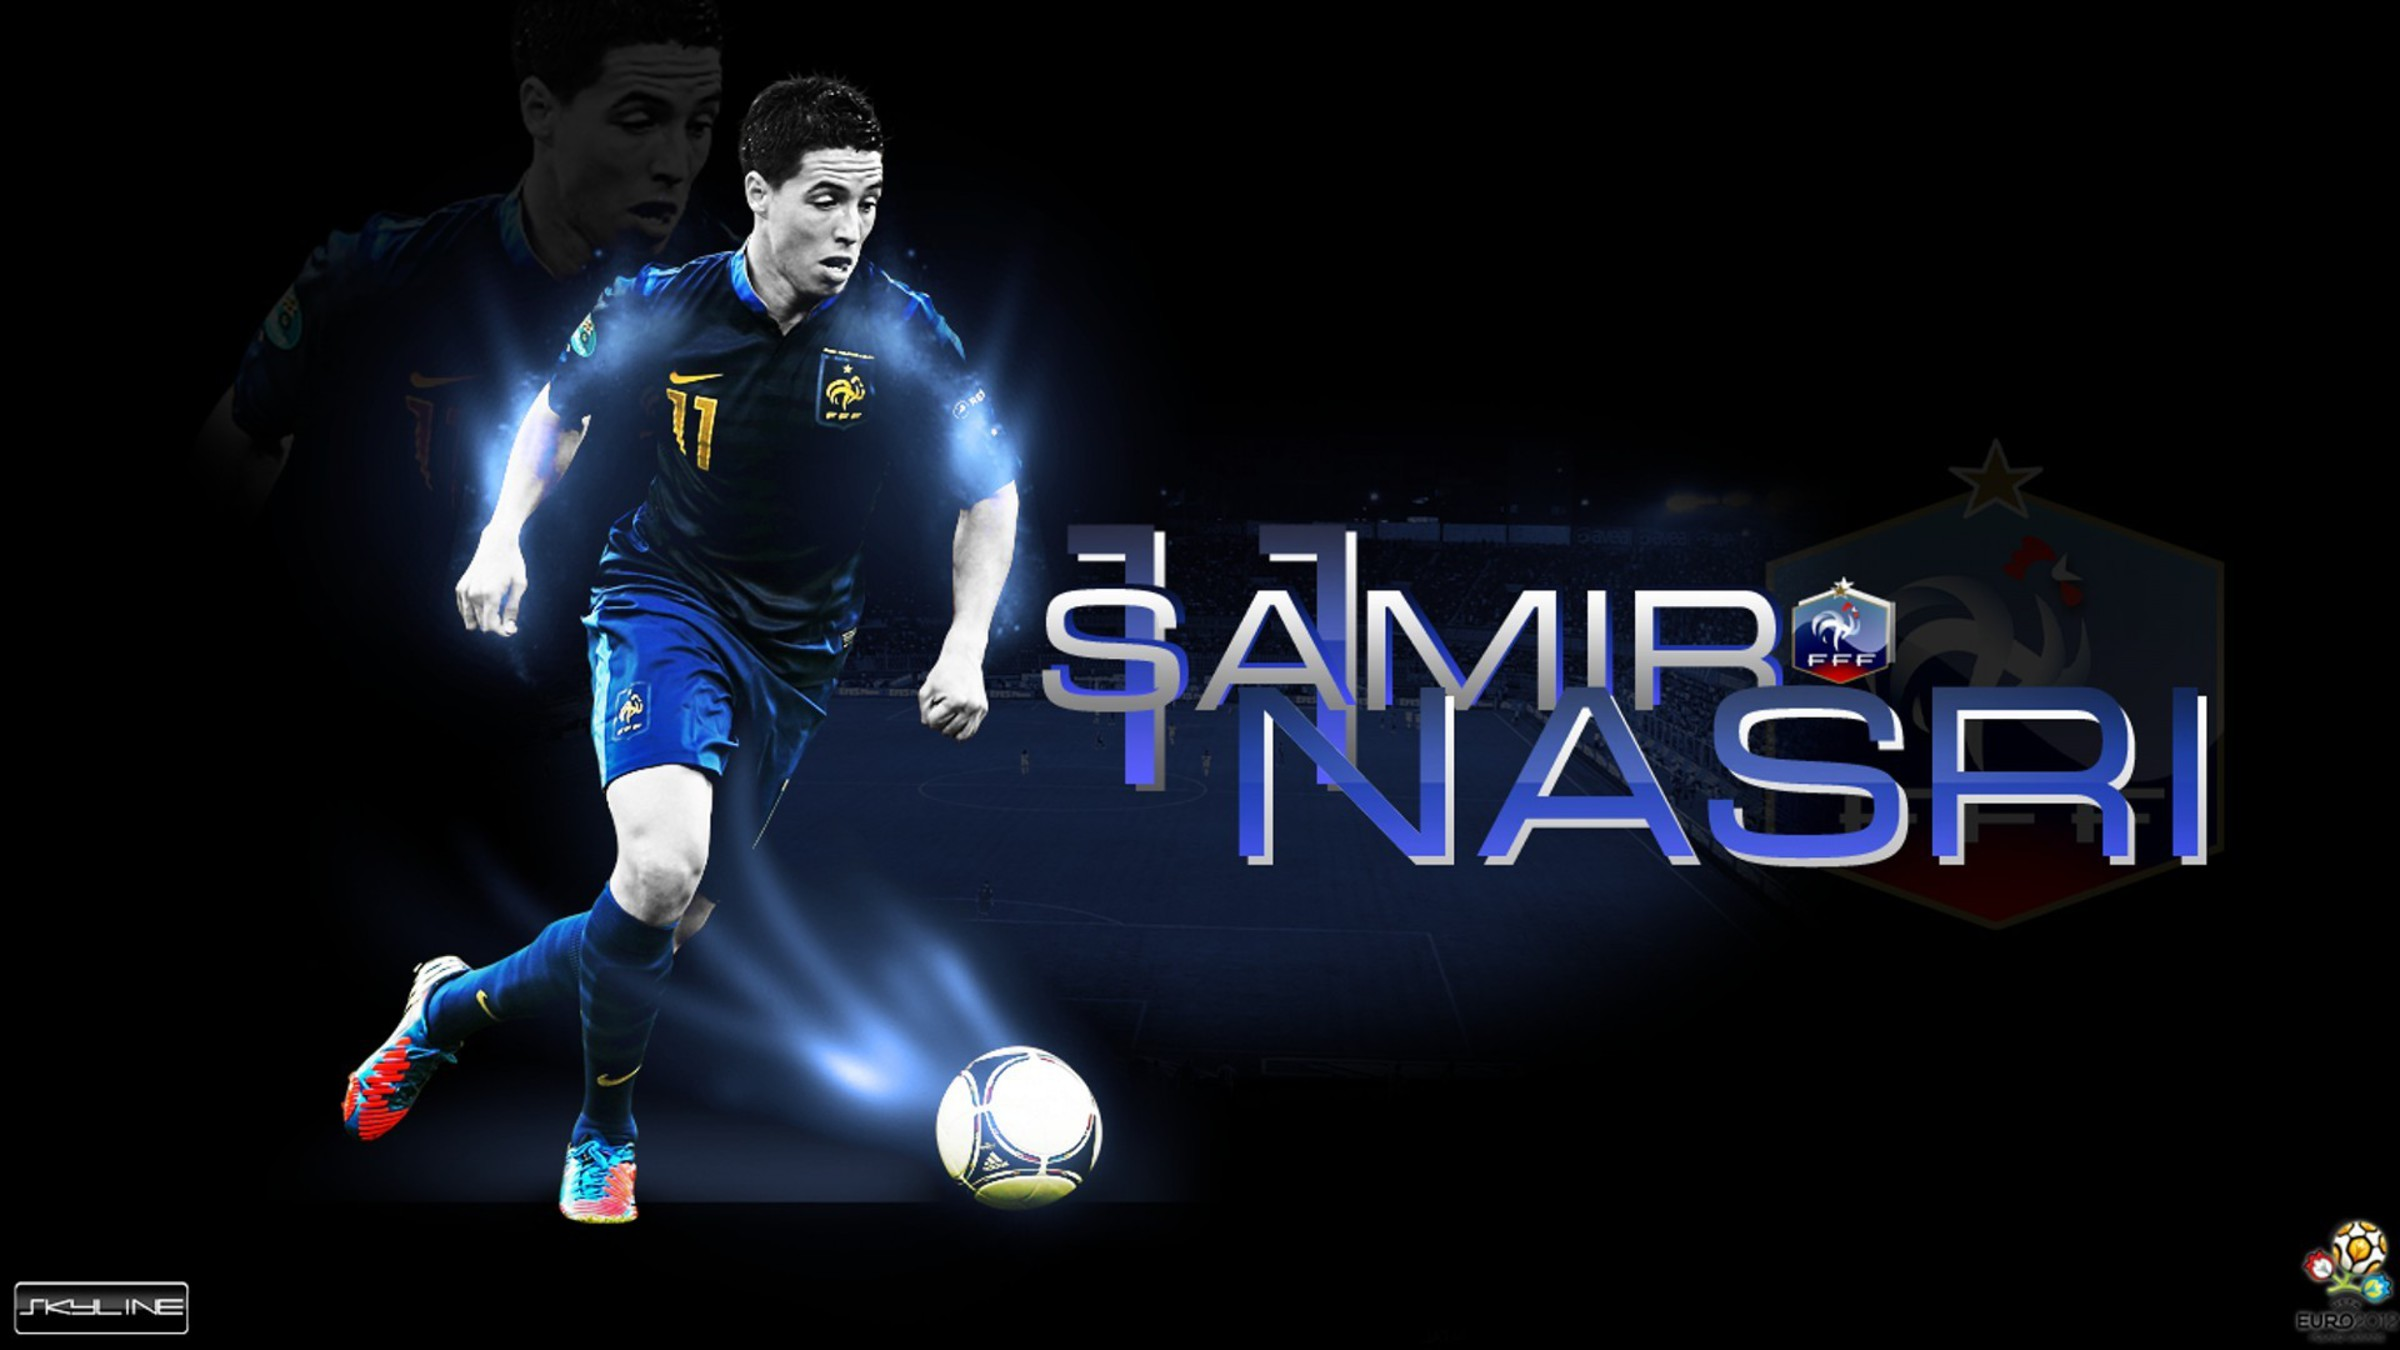 Sport Wallpapers Hd Game Images Players Desktop Images: France National Football Team Samir Nasri Players